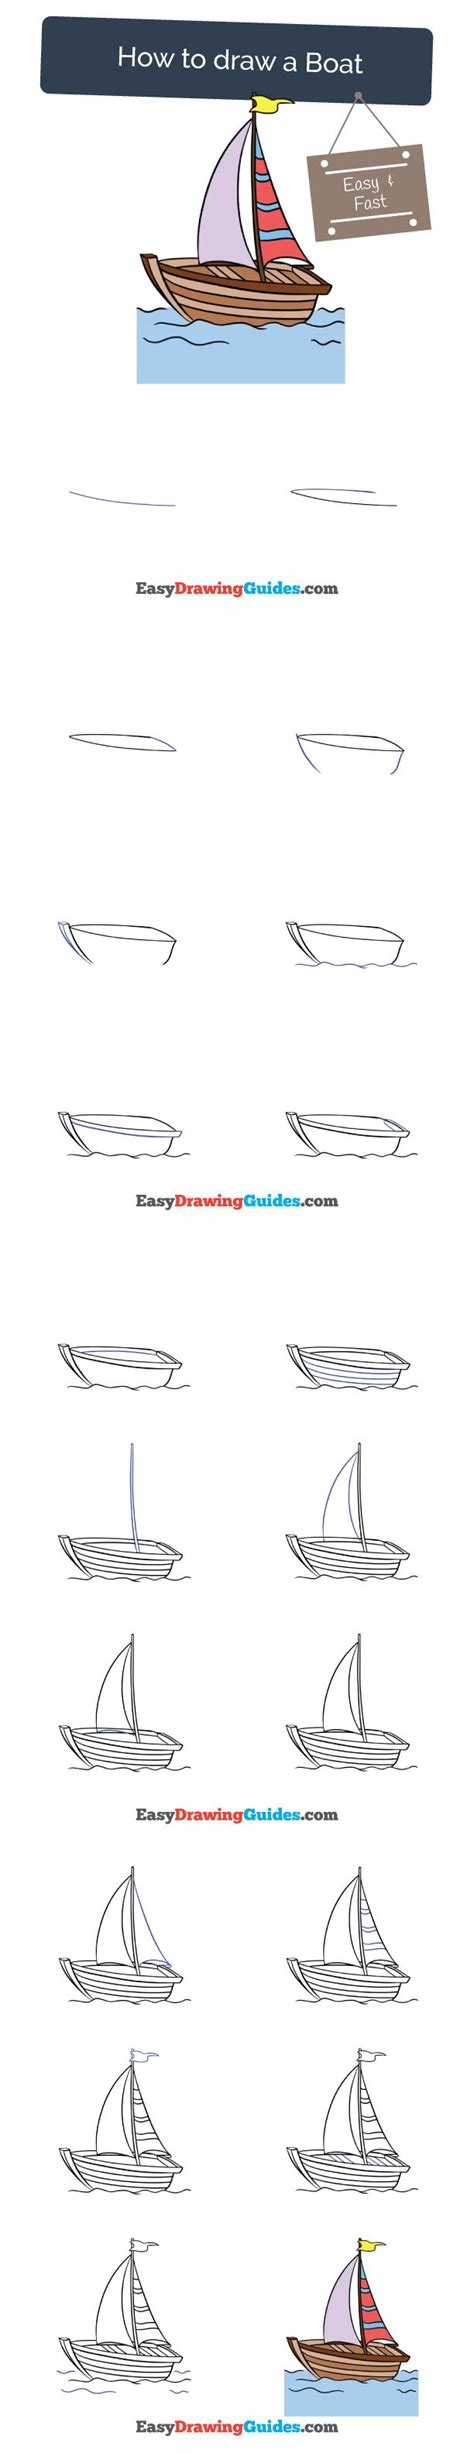 boat drawing tutorial how to a boat in a few easy steps boating drawings and